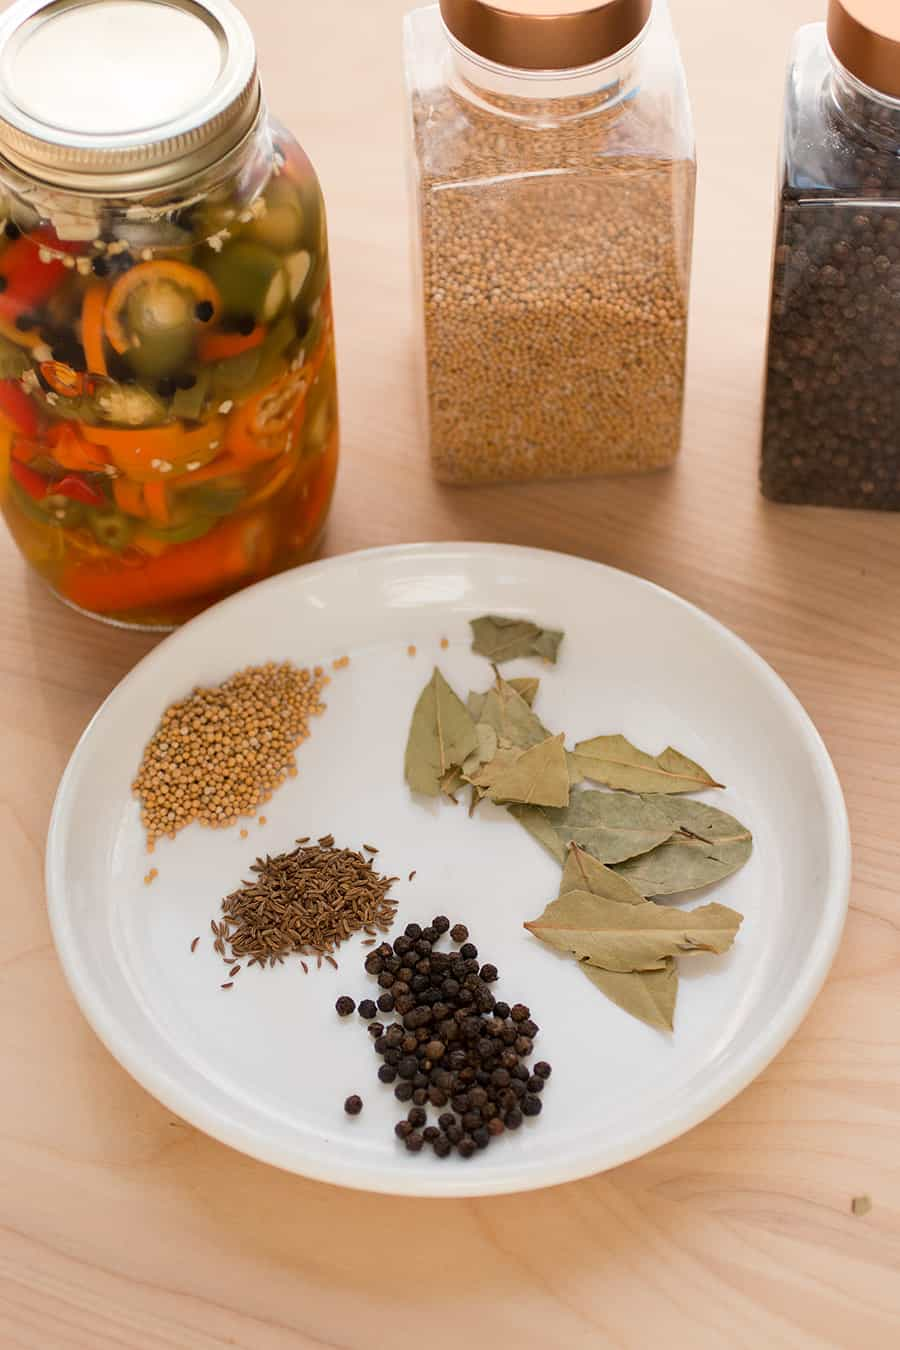 Pickling Spice for Pickled Peppers